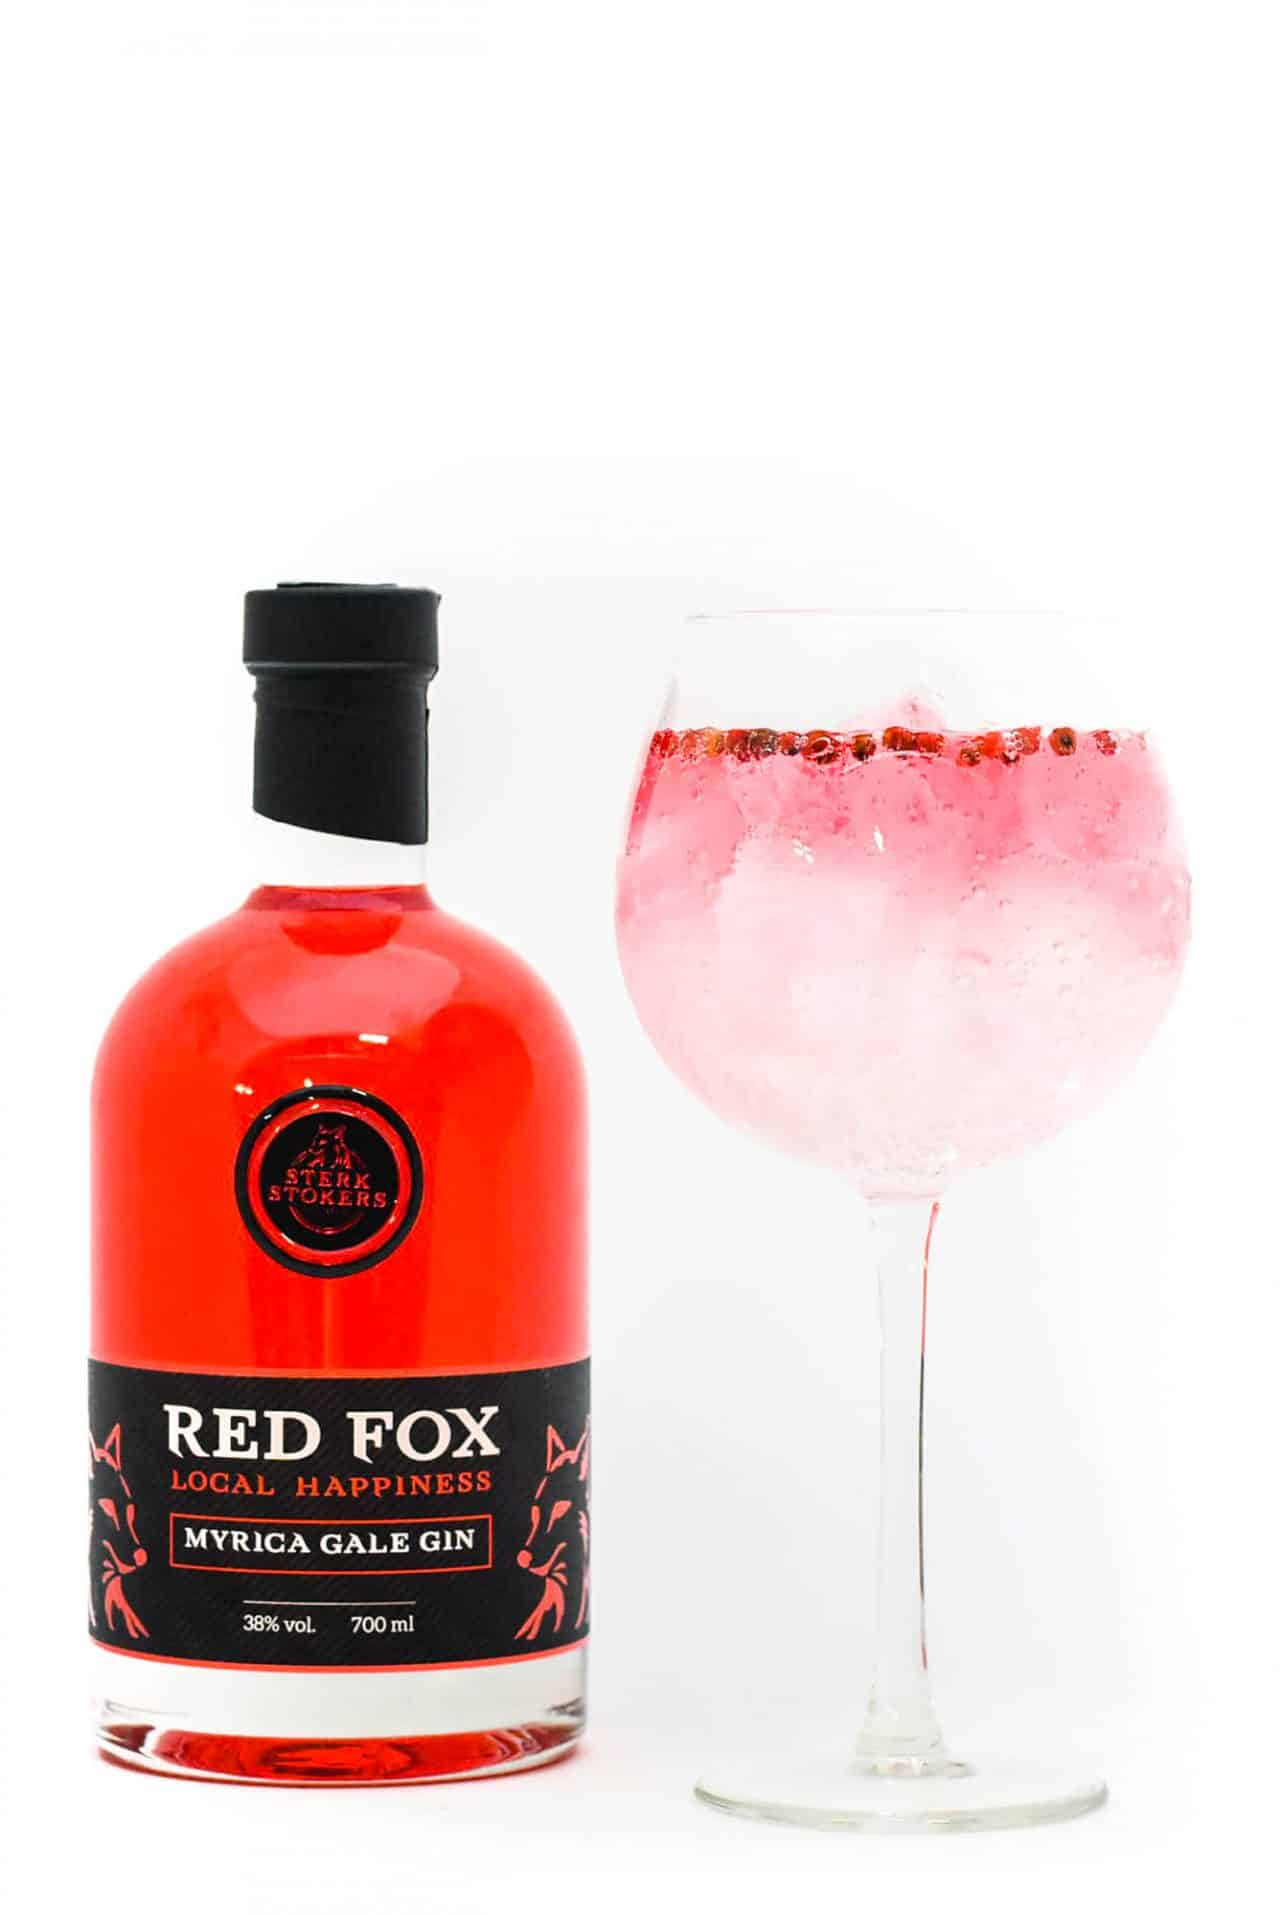 Red Fox Gin van Sterkstokers met Glas